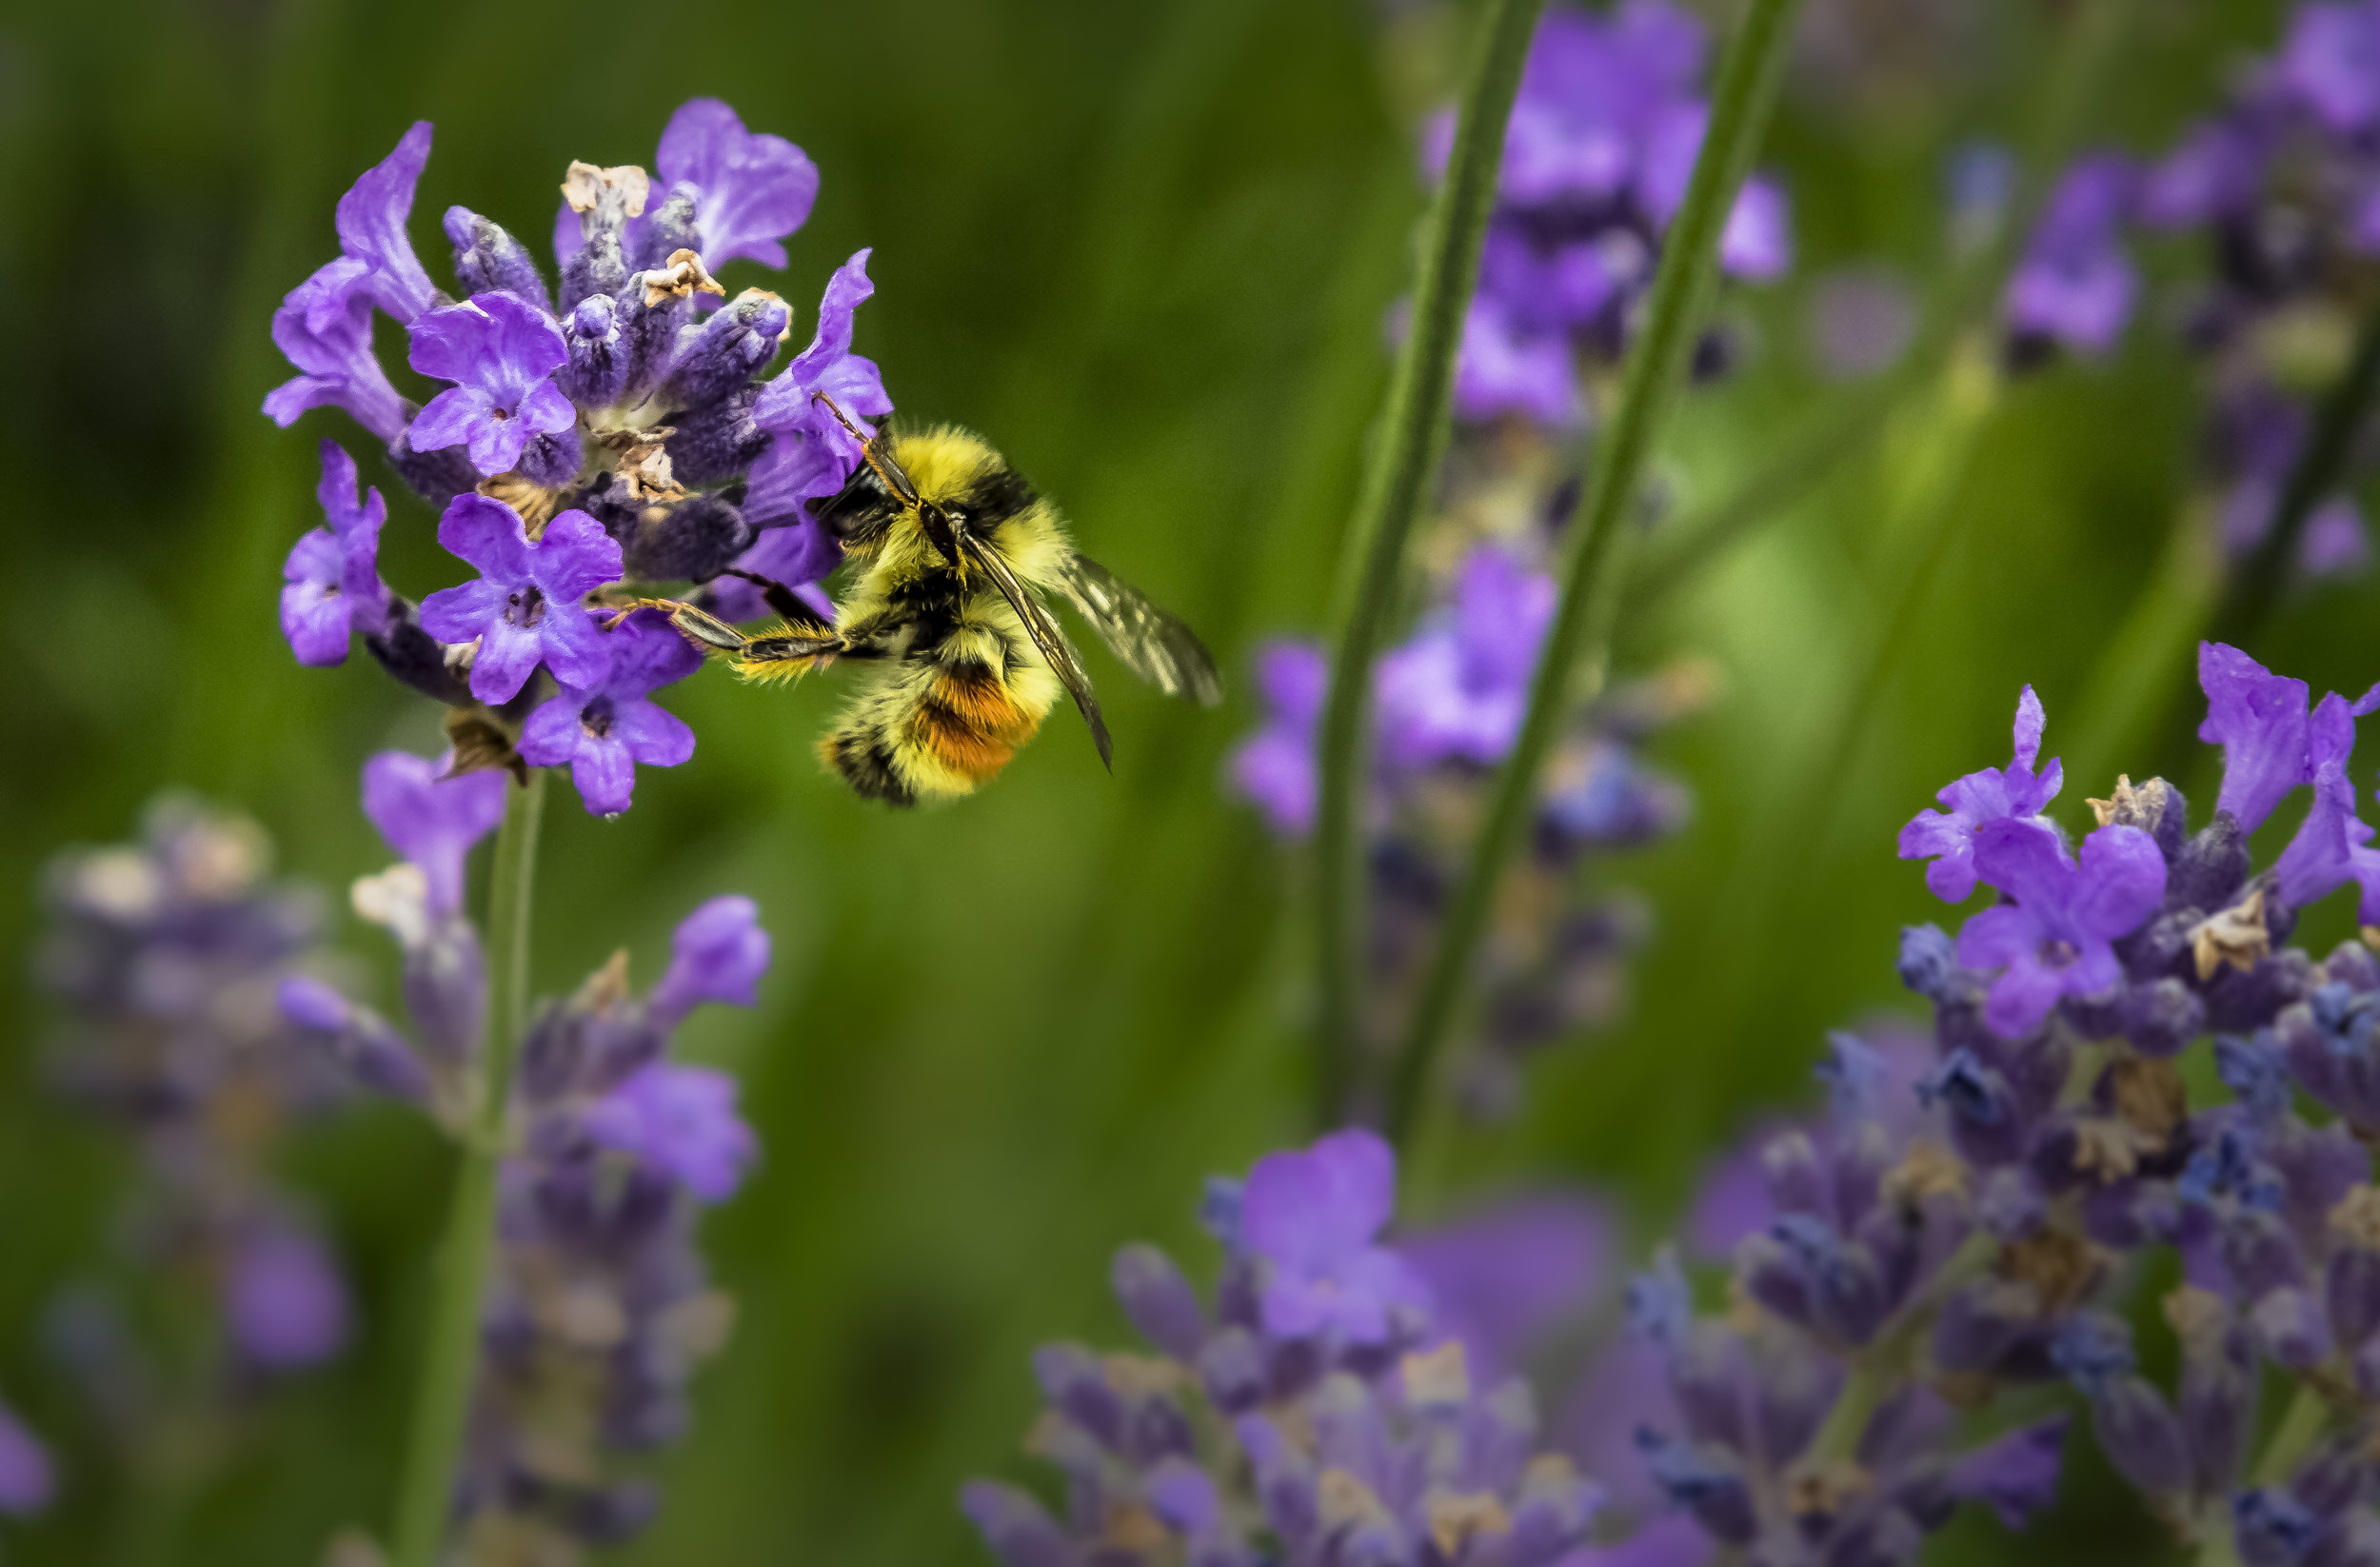 7 Things You Can Do for Pollinators - Help keep Indiana blooming!